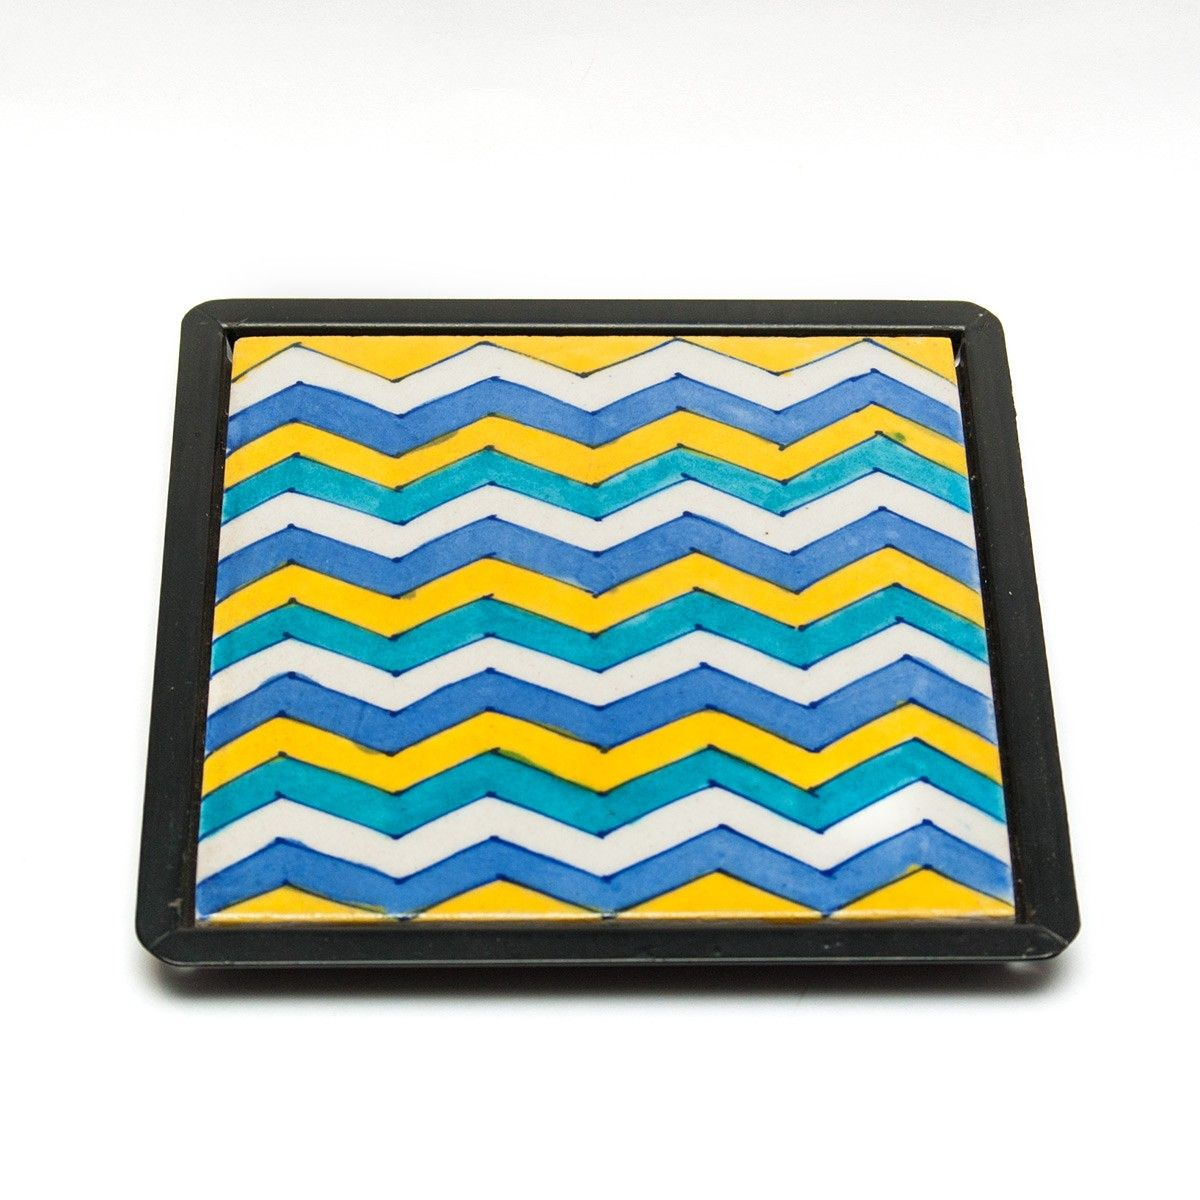 Green Ceramic Table Trivet - 6 X 6 Inches